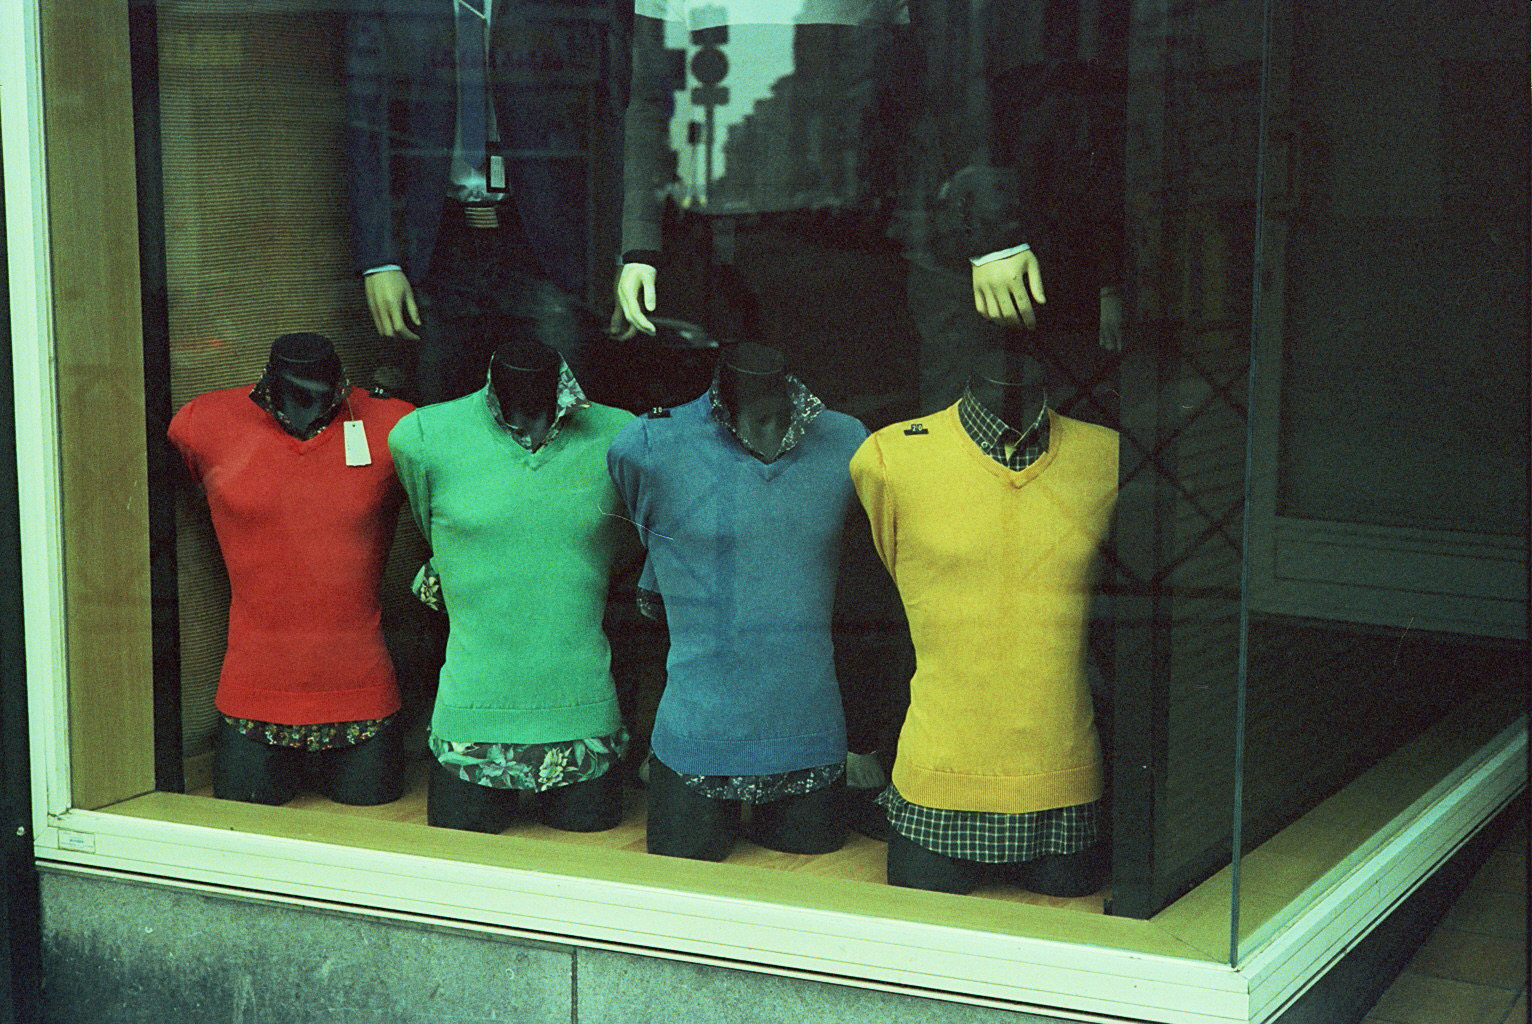 Mannequins bring color to vitrines